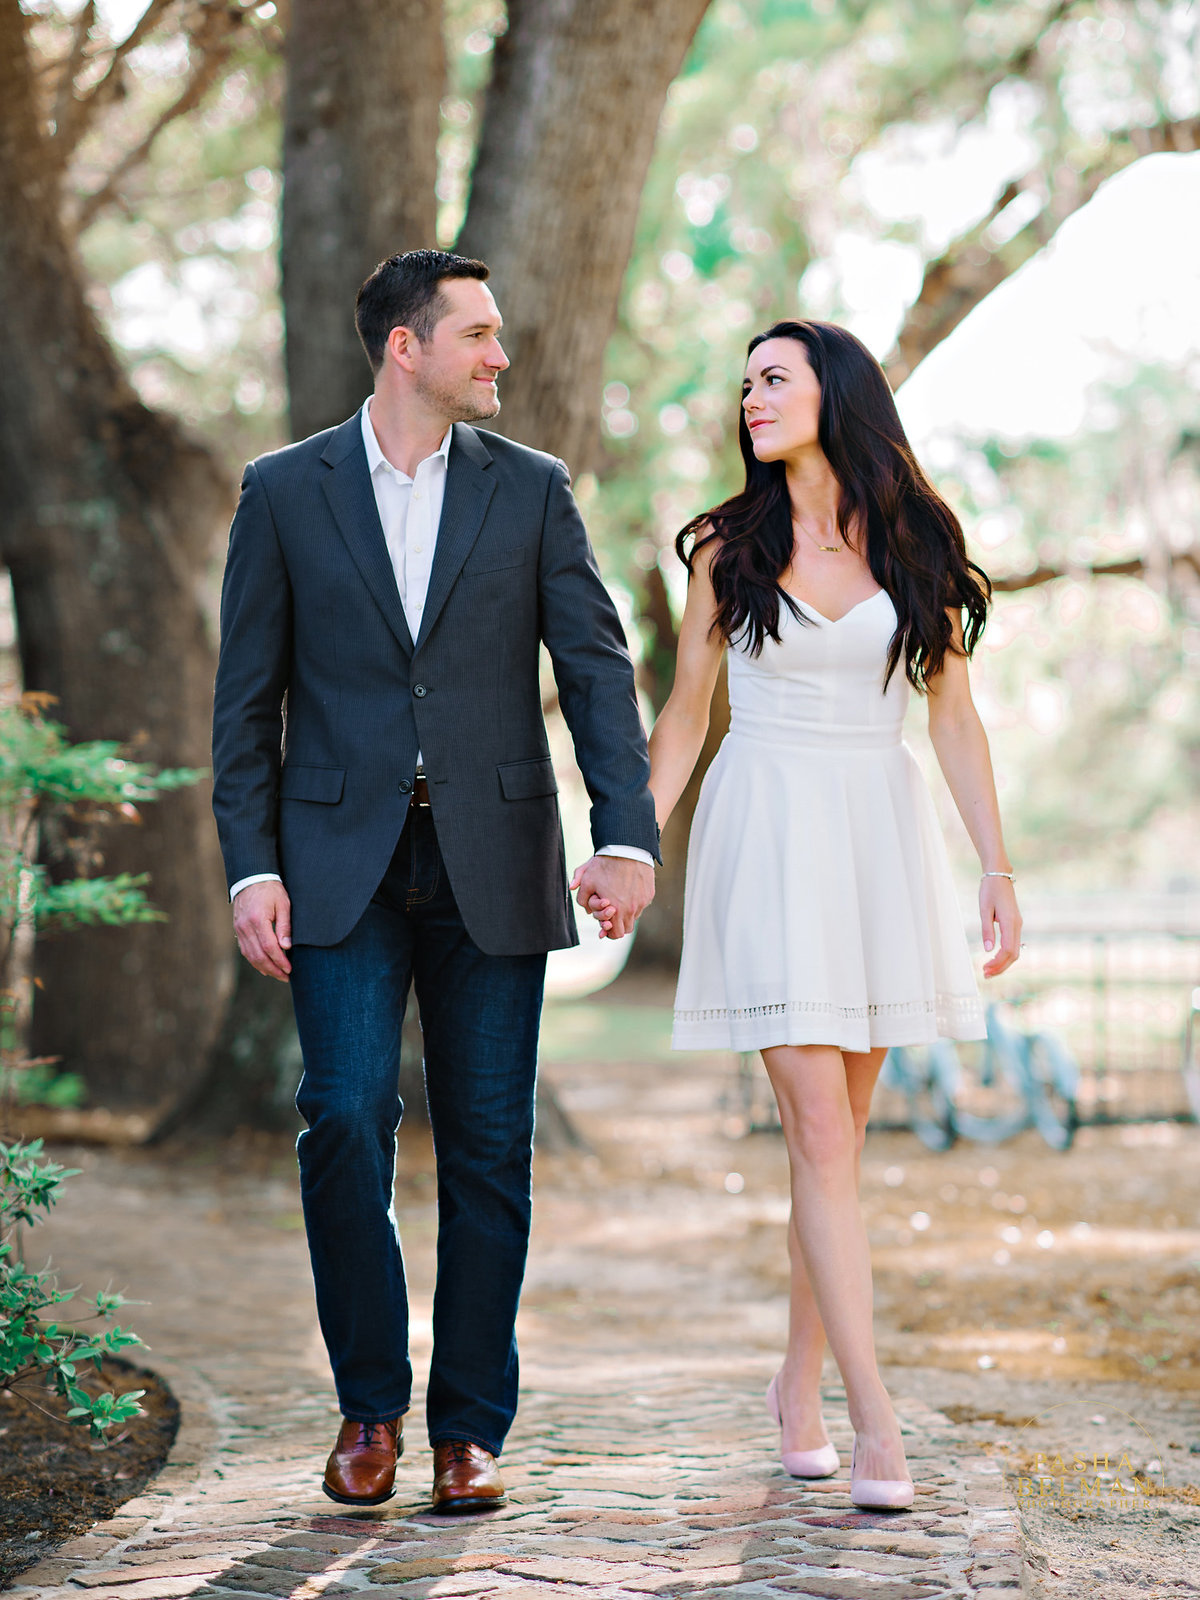 Charleston Engagement Photography | Engagement Pictures in Charleston | Engagement Portraits by Pasha Belman Photographer-2